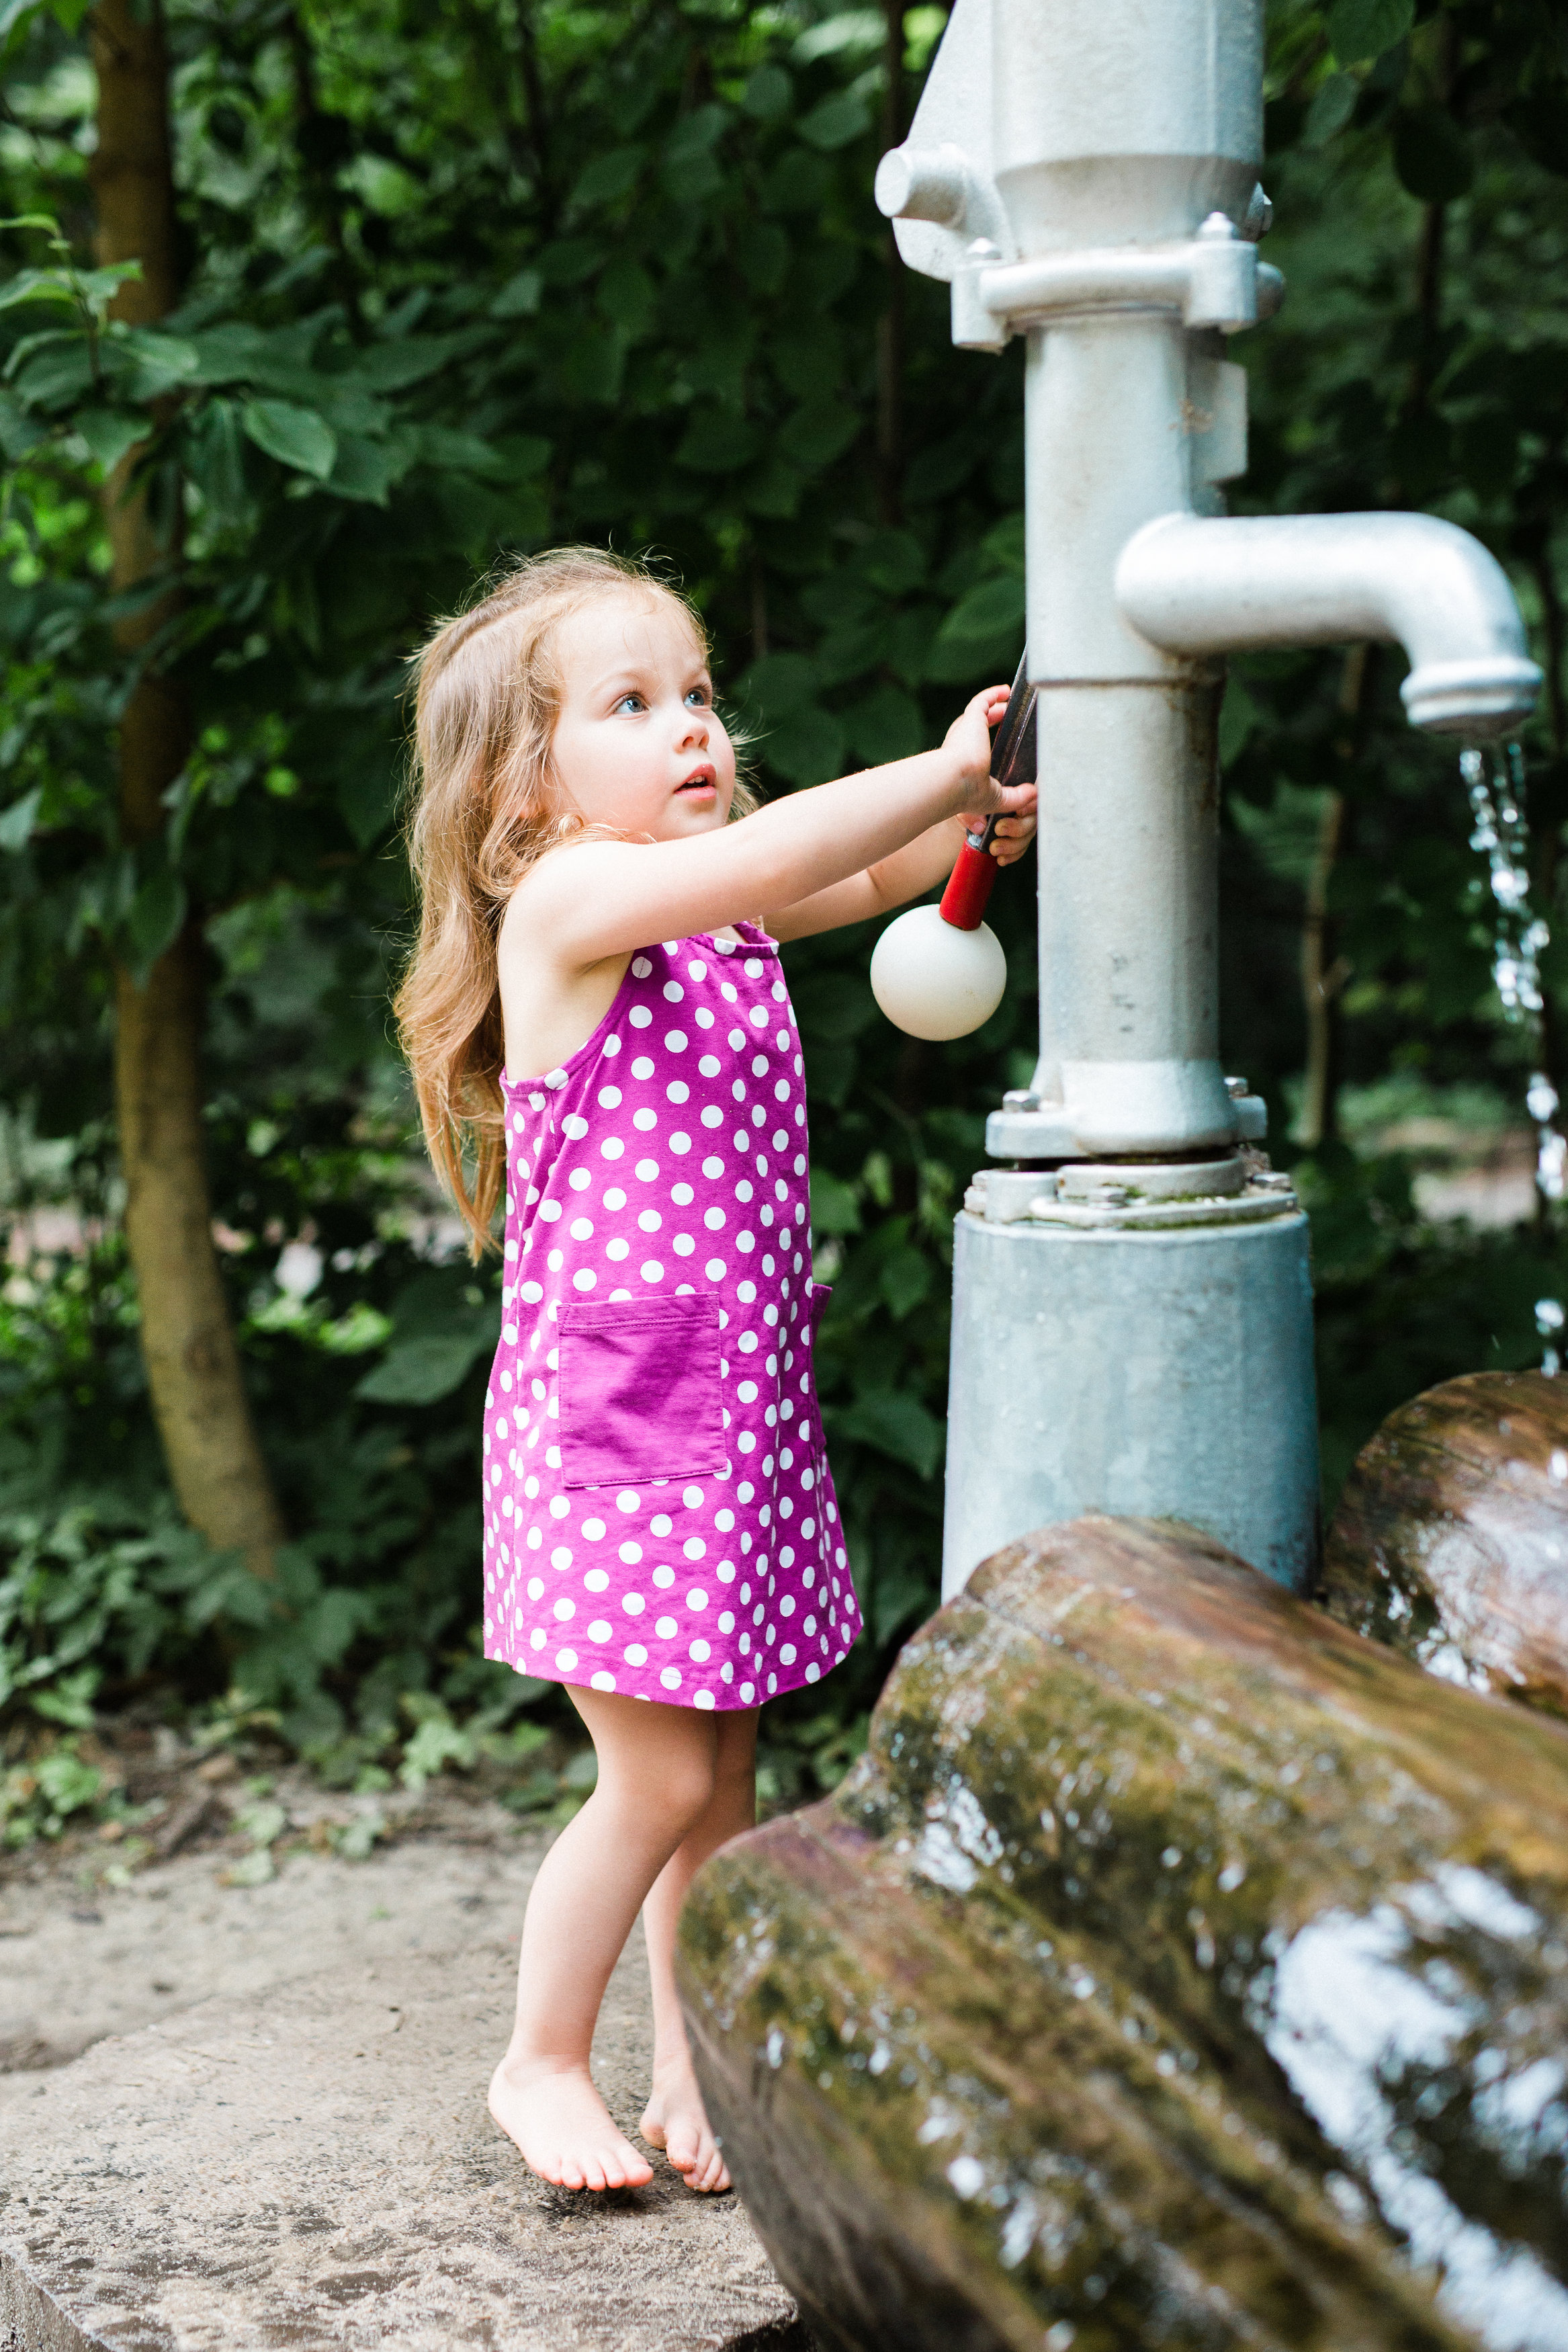 prospect-park-family-photography_natural-playground-25-2.jpg